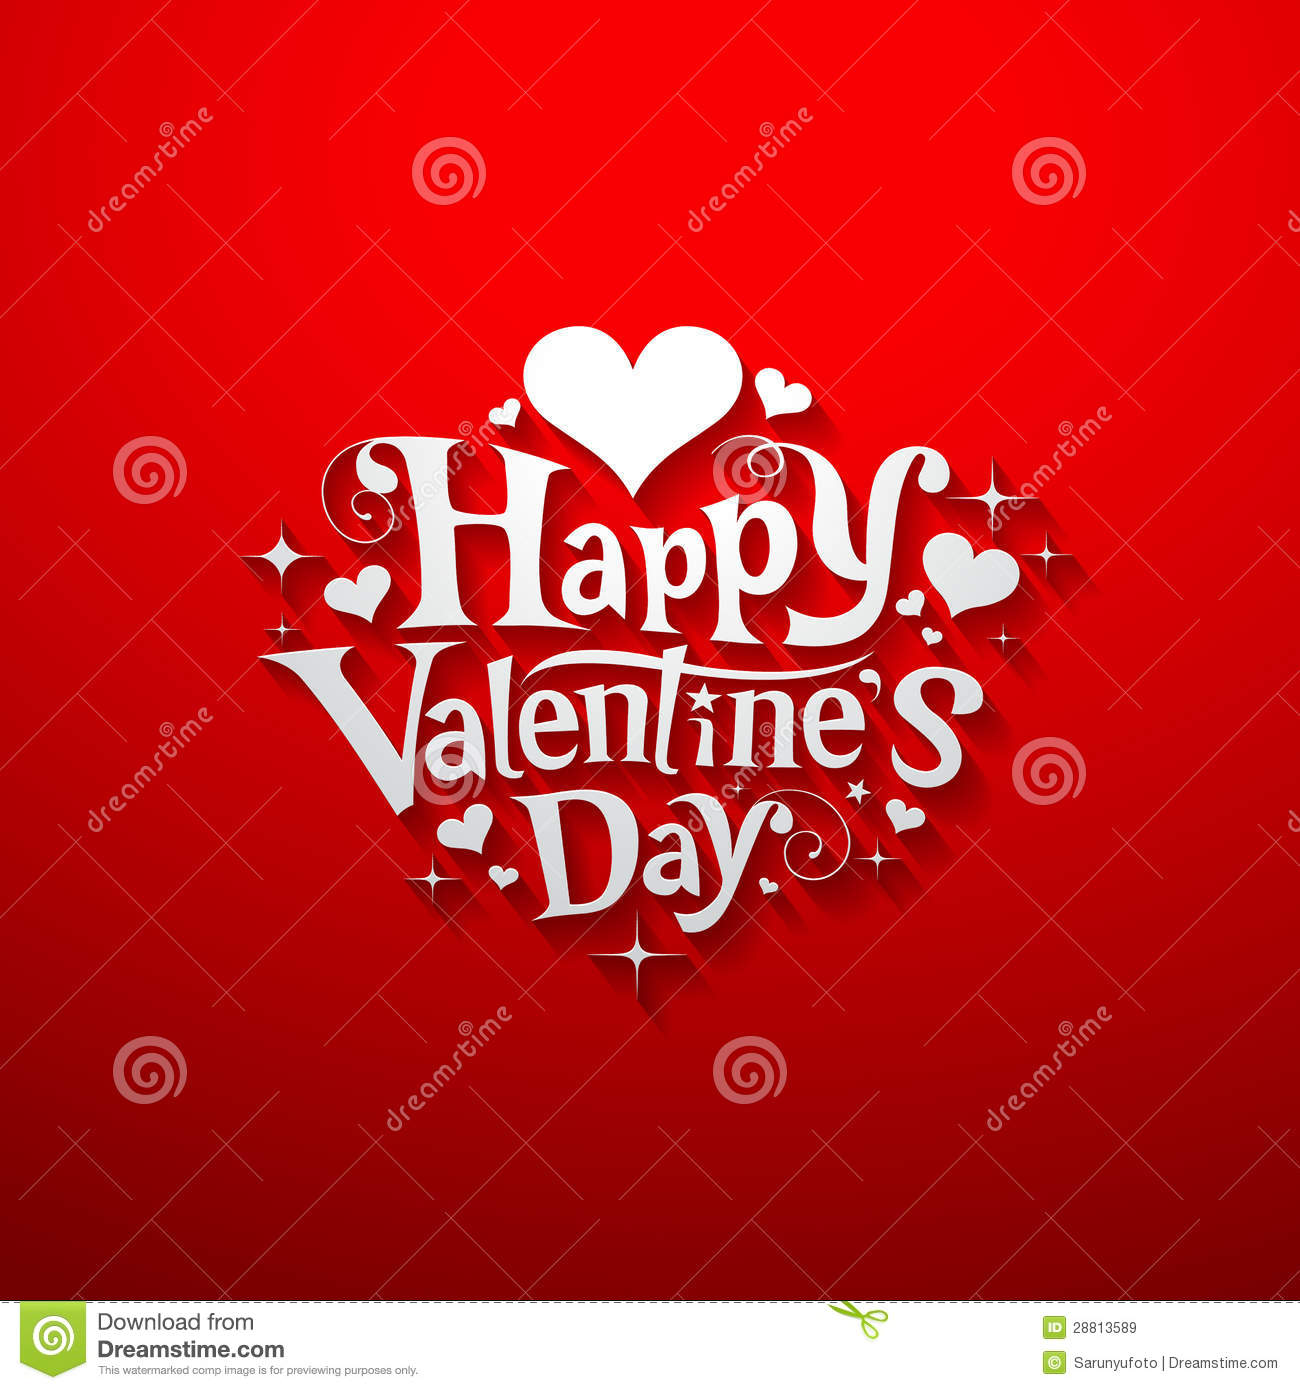 Happy Valentine Day Message Banner Stock Vector - Illustration of ...